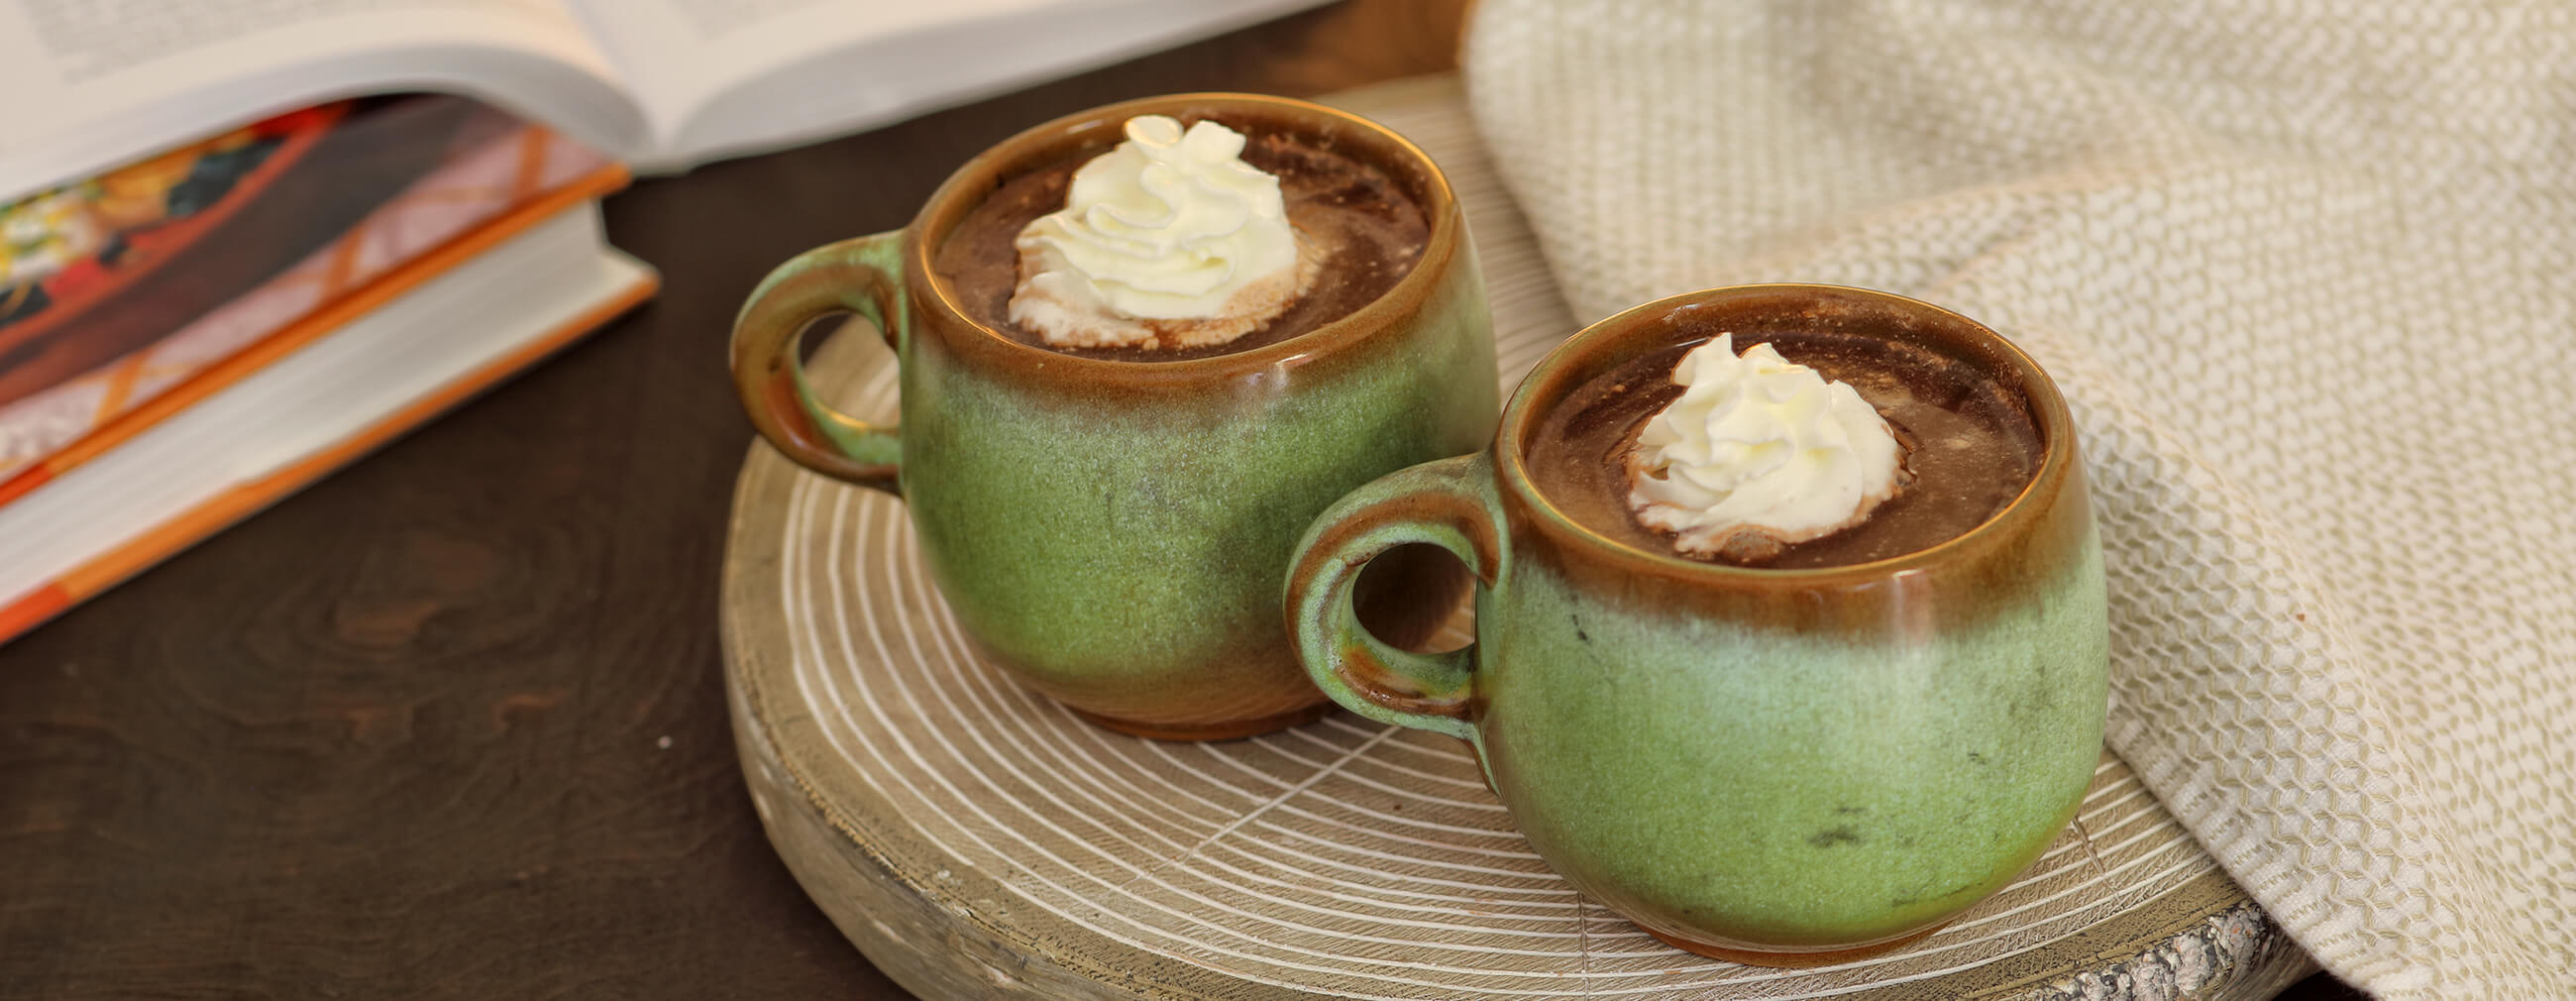 Dark Chocolate Peppermint Spiked Hot Cocoa